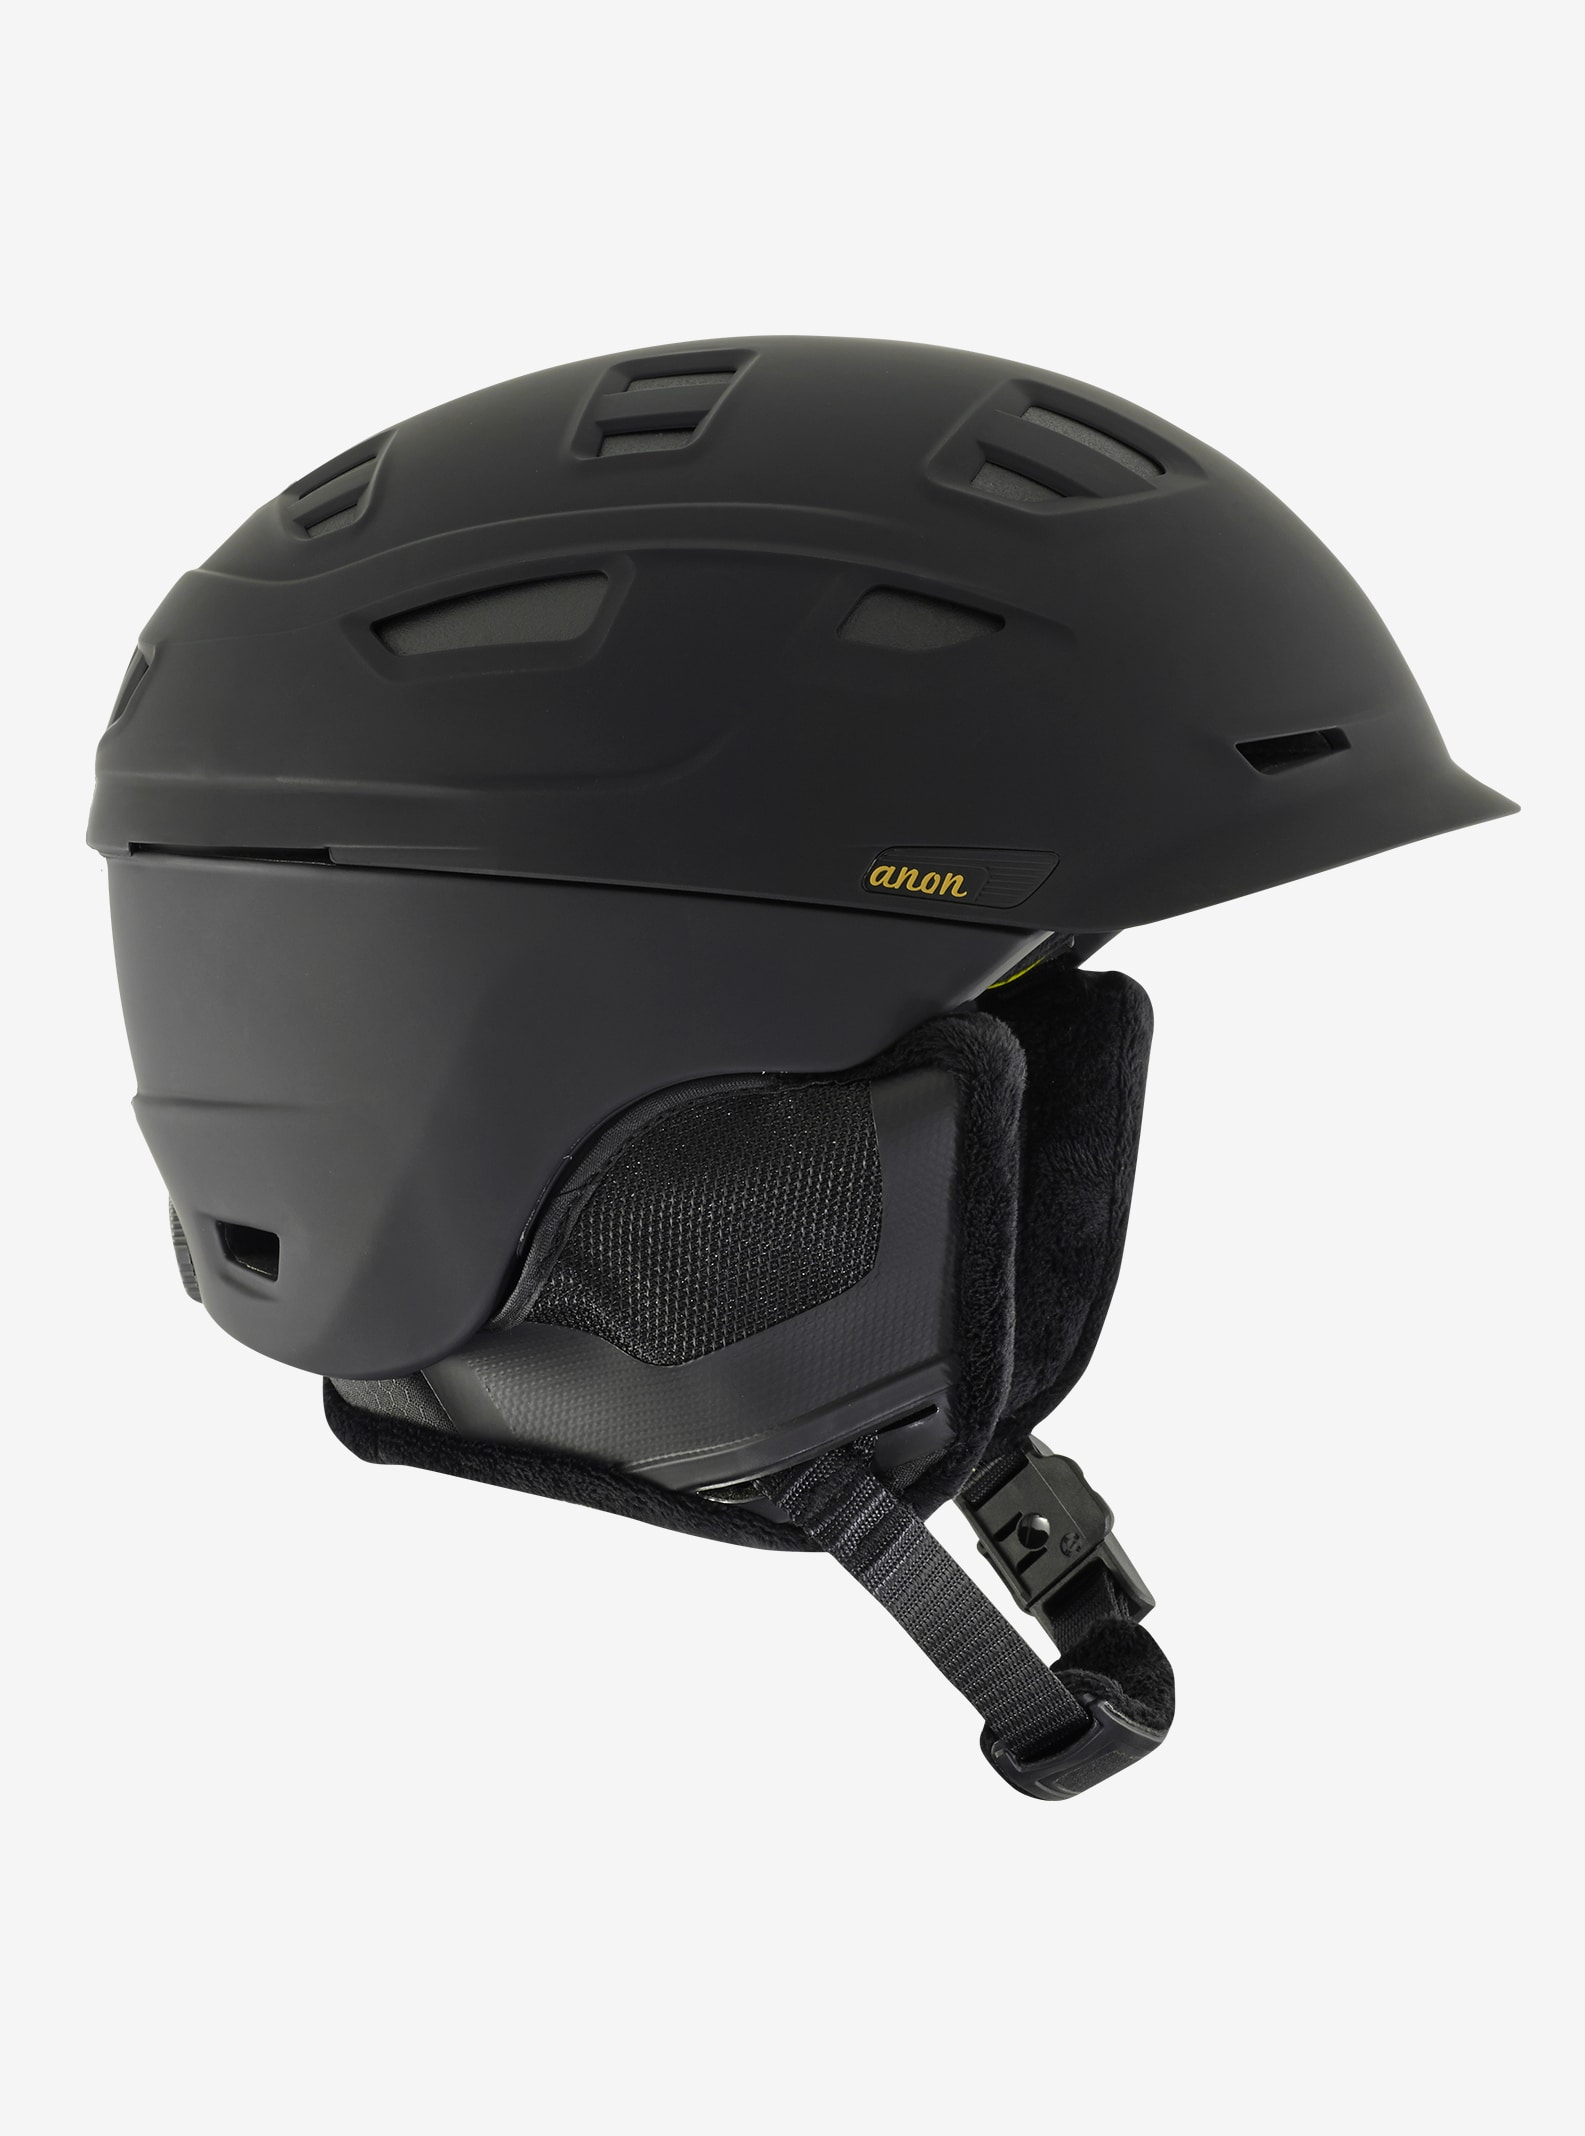 Women's Anon Nova Helmet shown in Black